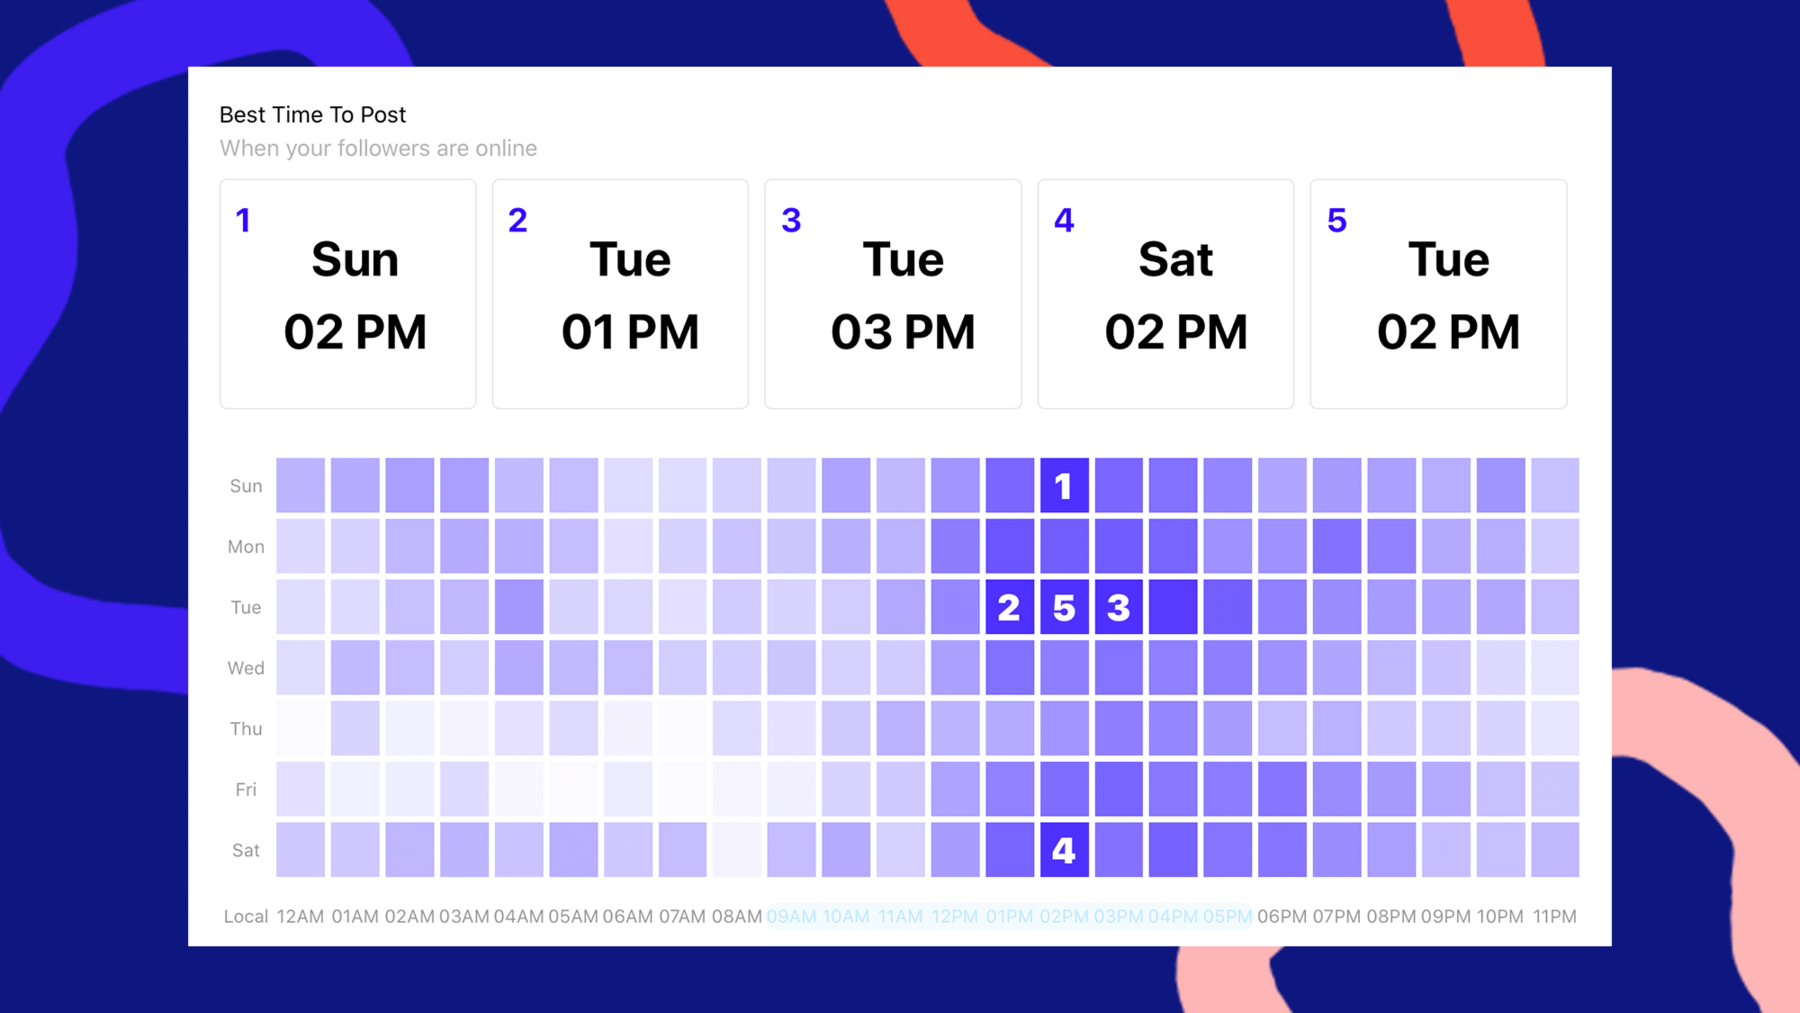 Sked's best time to post feature